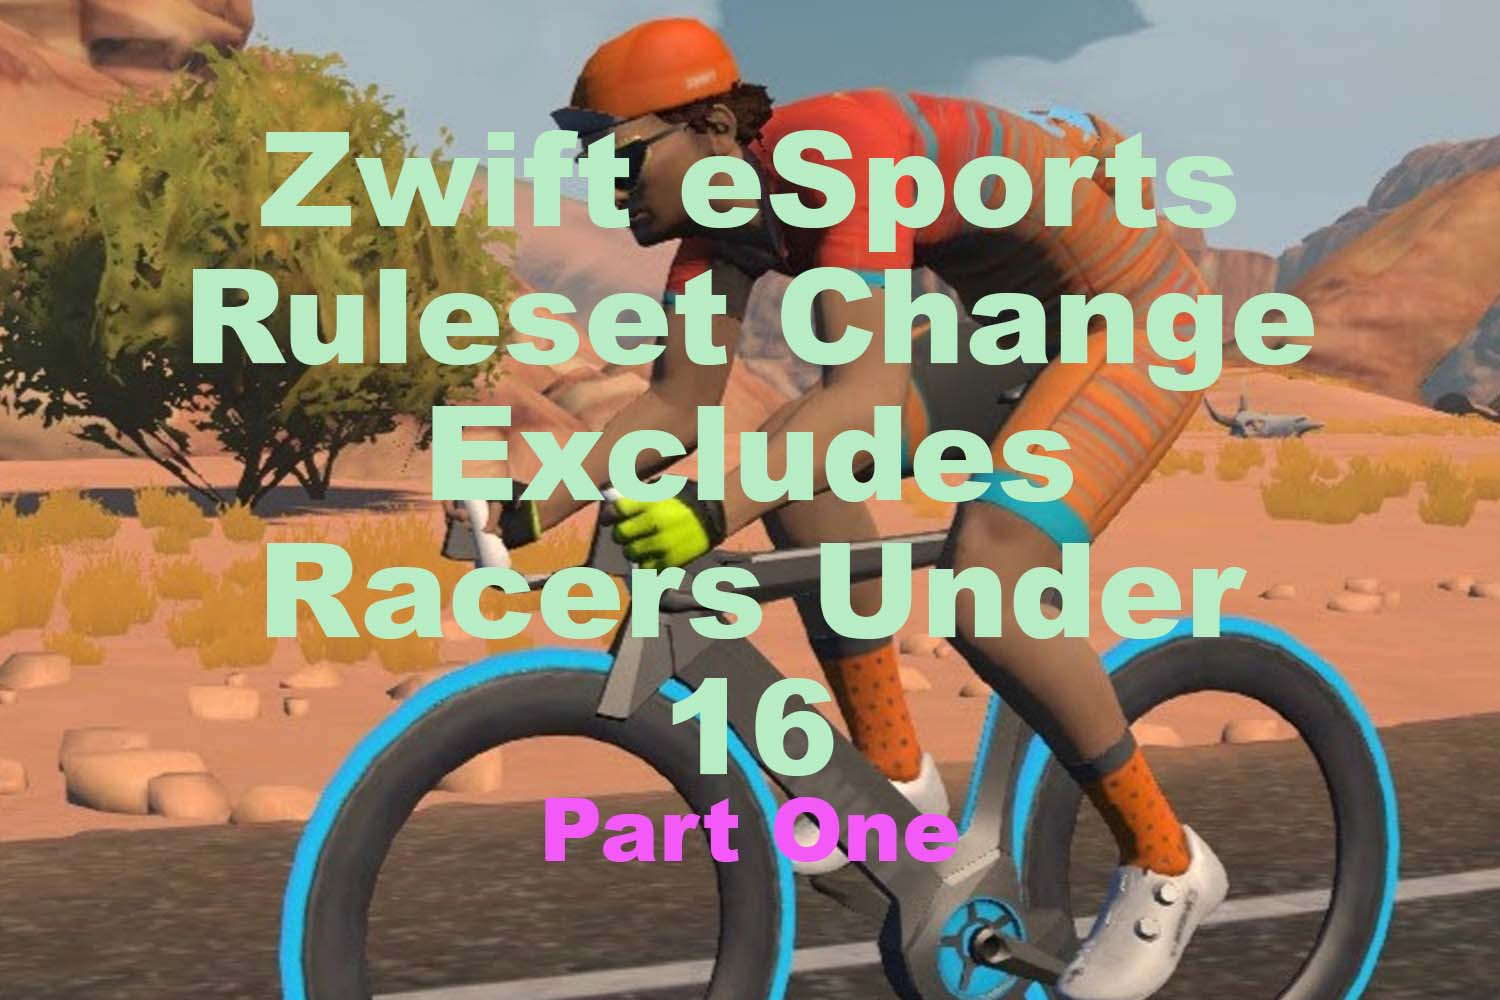 Part One: Zwift eSports Ruleset Change Excludes Racers Under 16